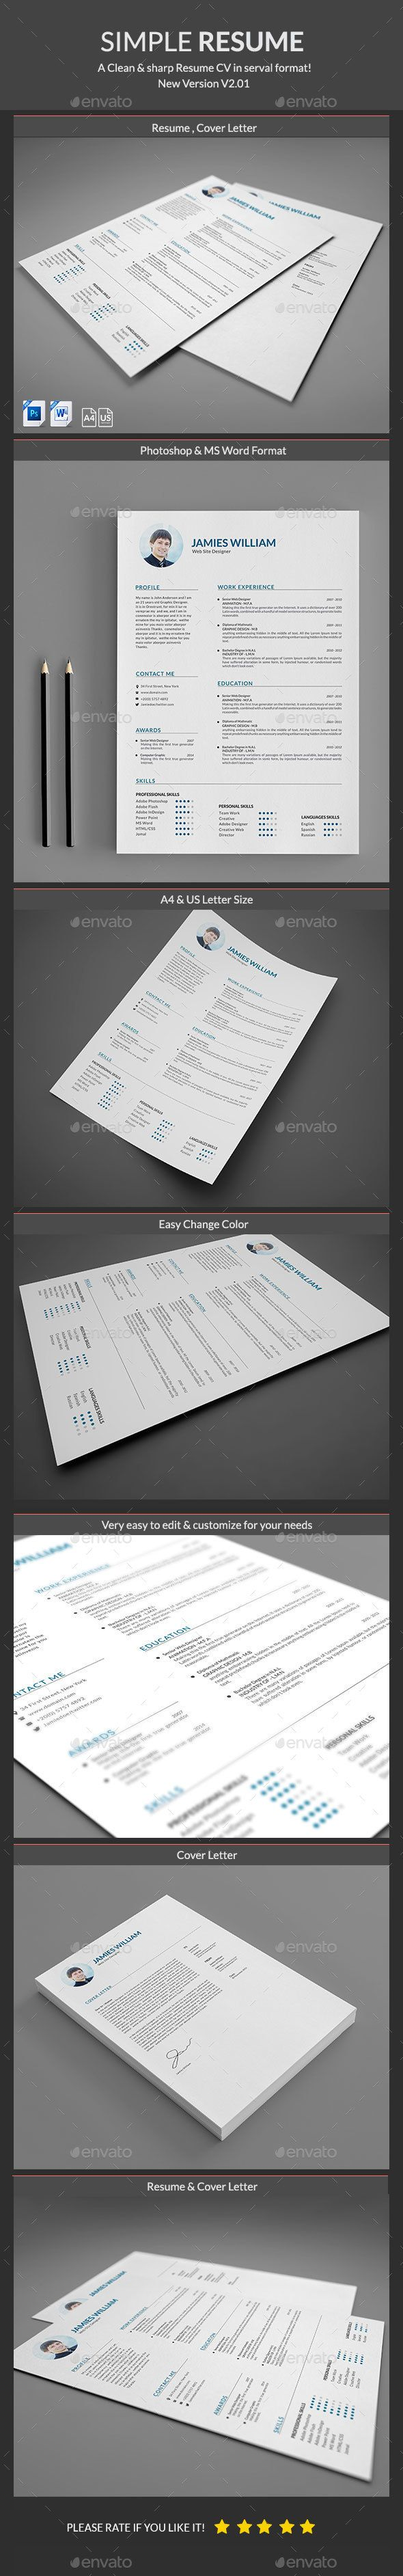 Best Cv Images On   Resume Design Creative